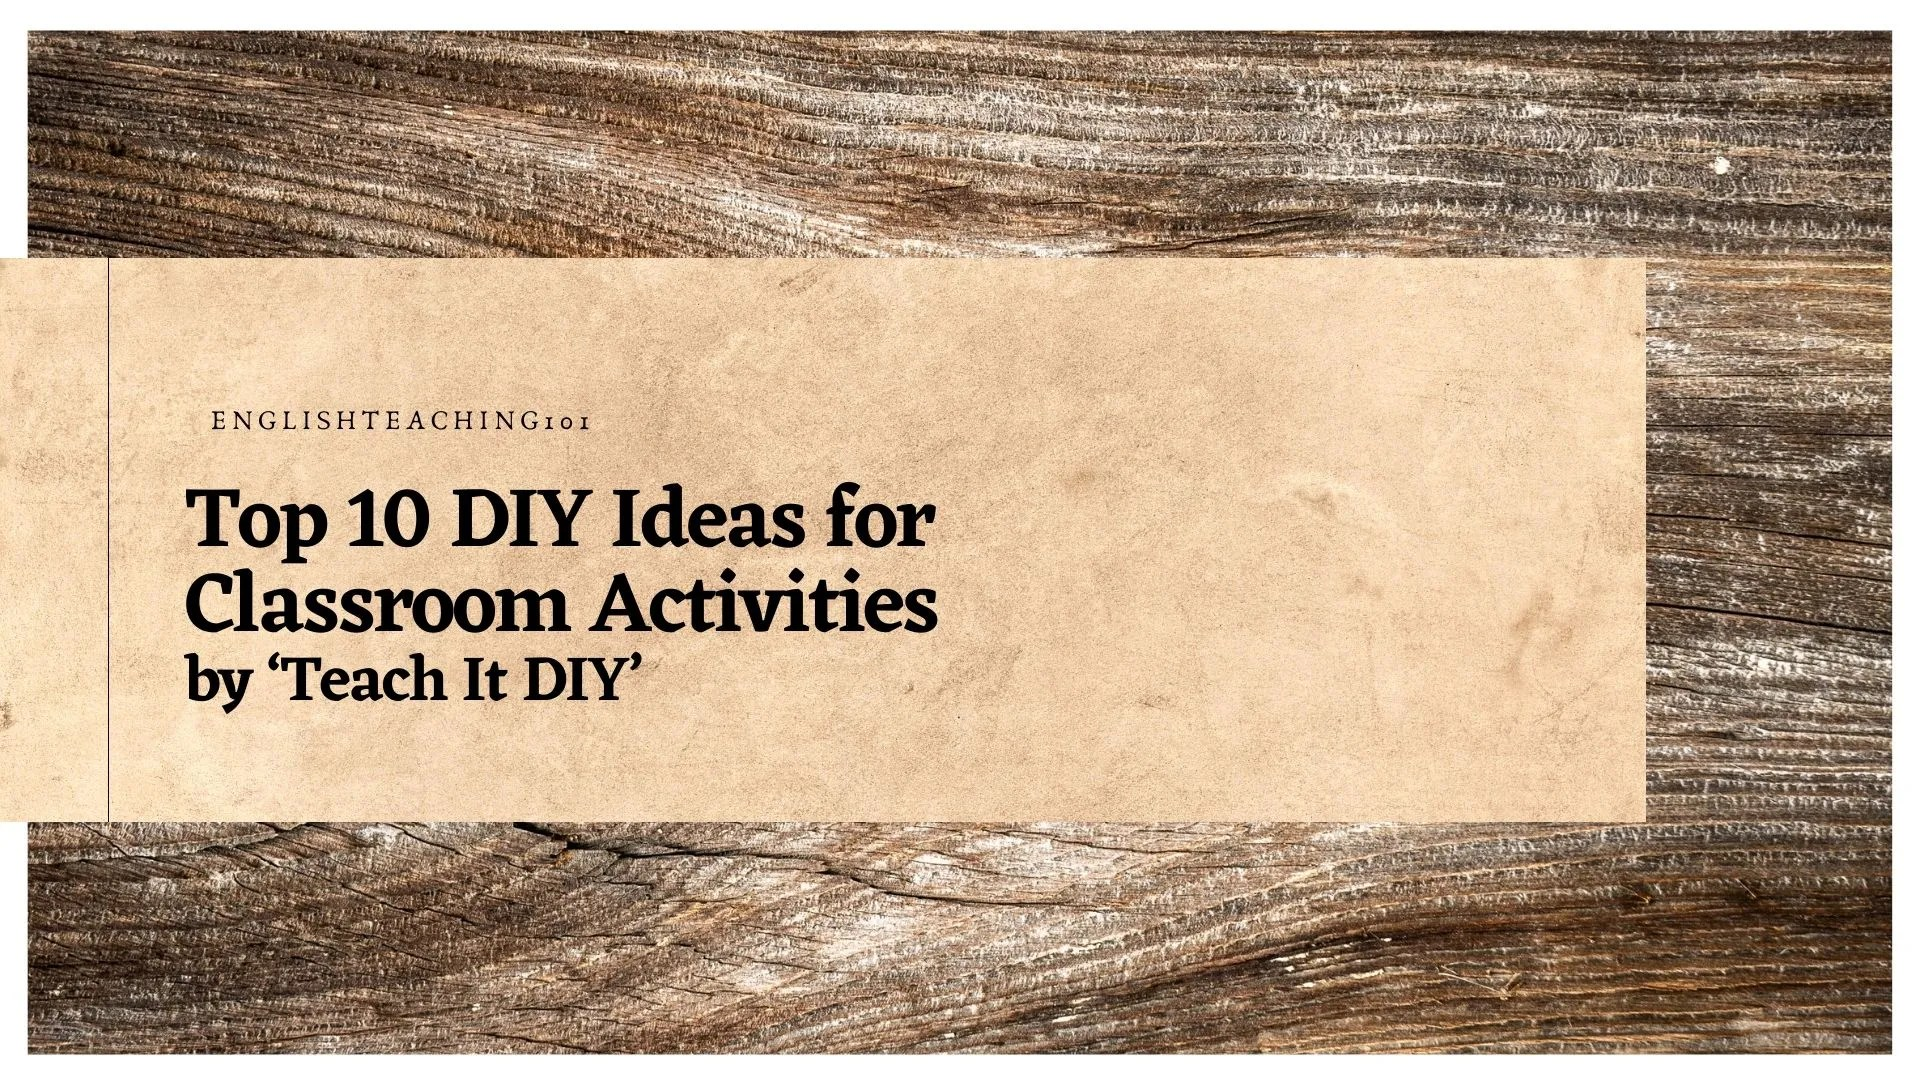 DIY ideas and activities